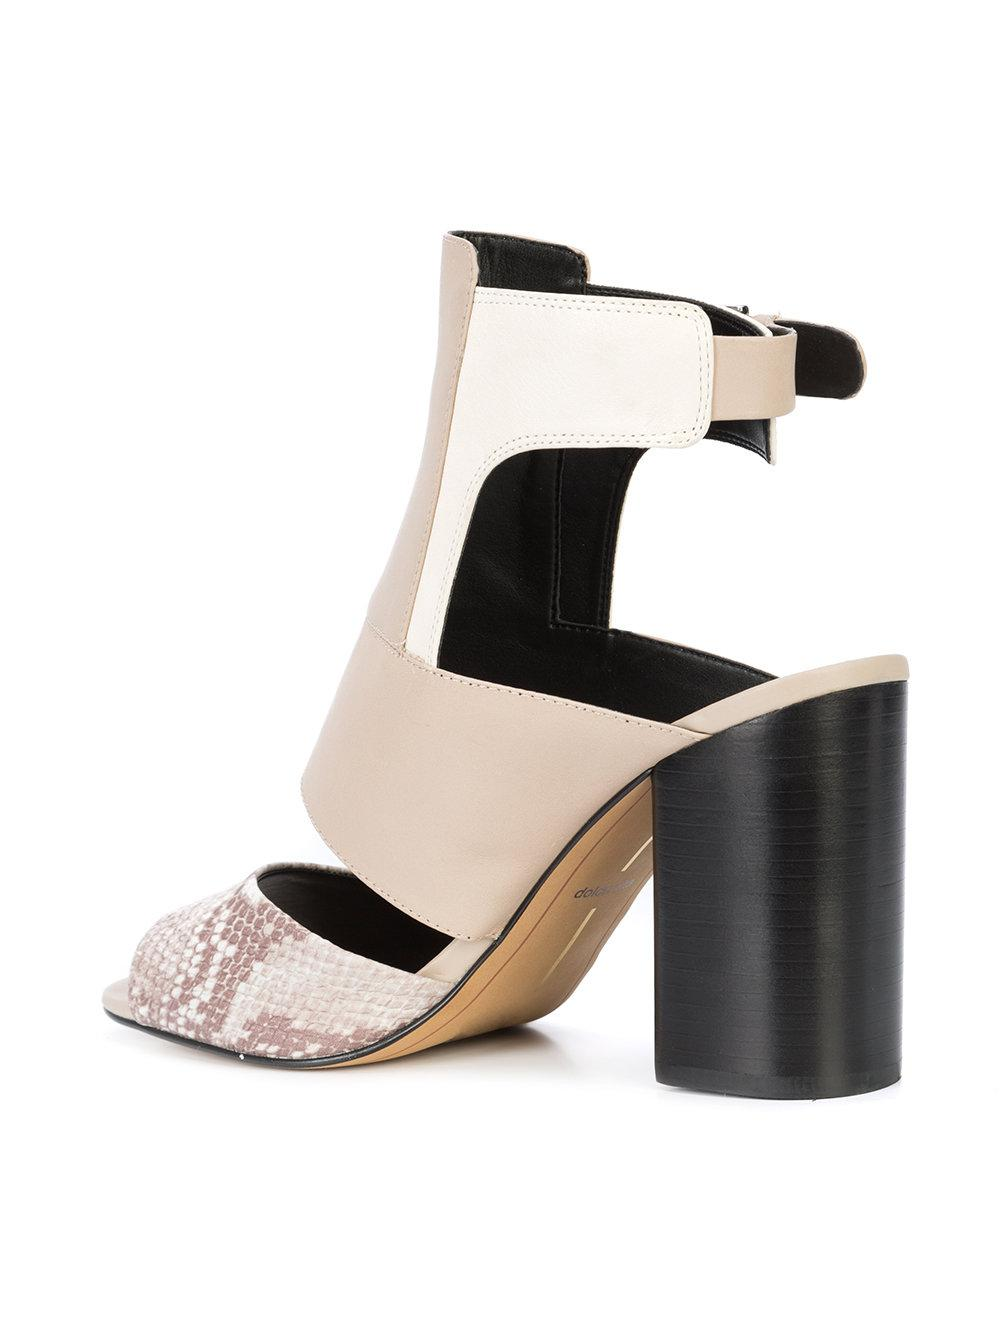 Romeo ankle strap sandals - Nude & Neutrals Dolce Vita 0k2KU